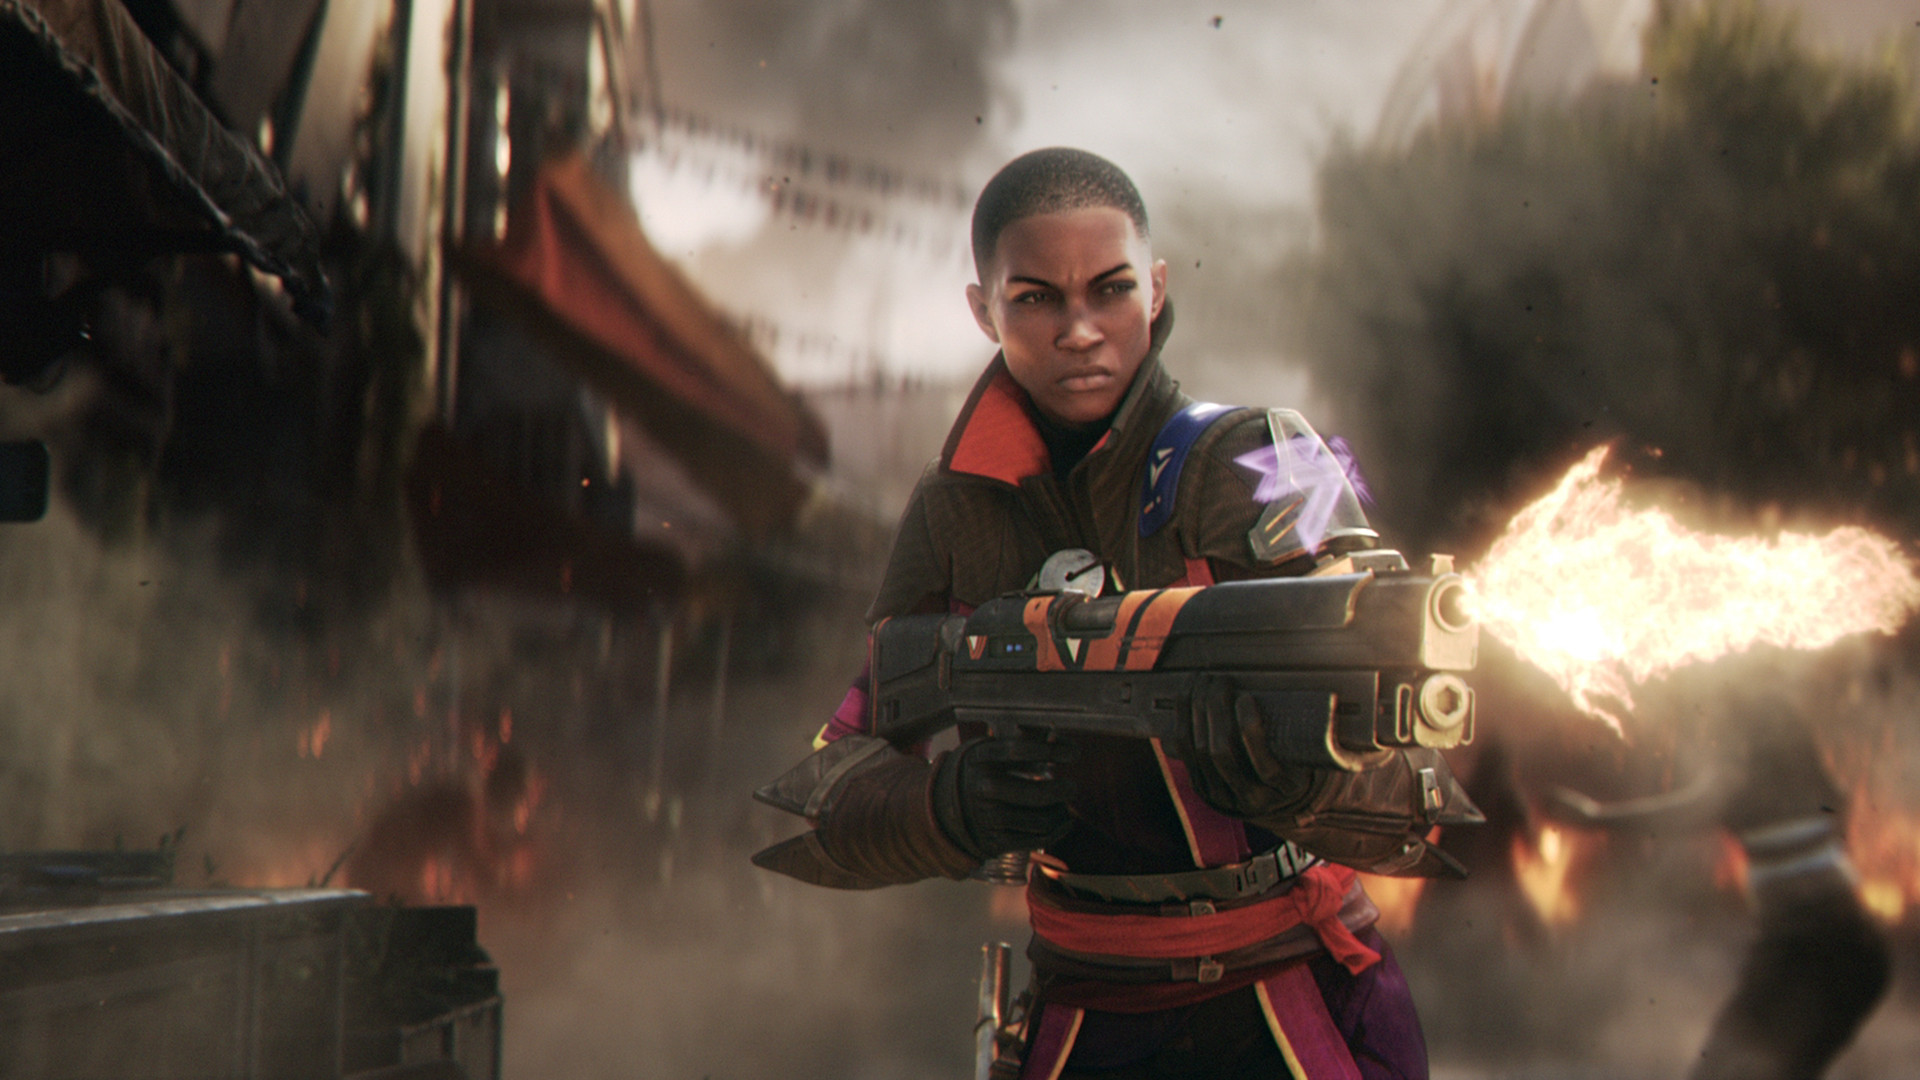 Players who have already braved Destiny will be rewarded when Destiny 2 lands with Veteran Rewards.